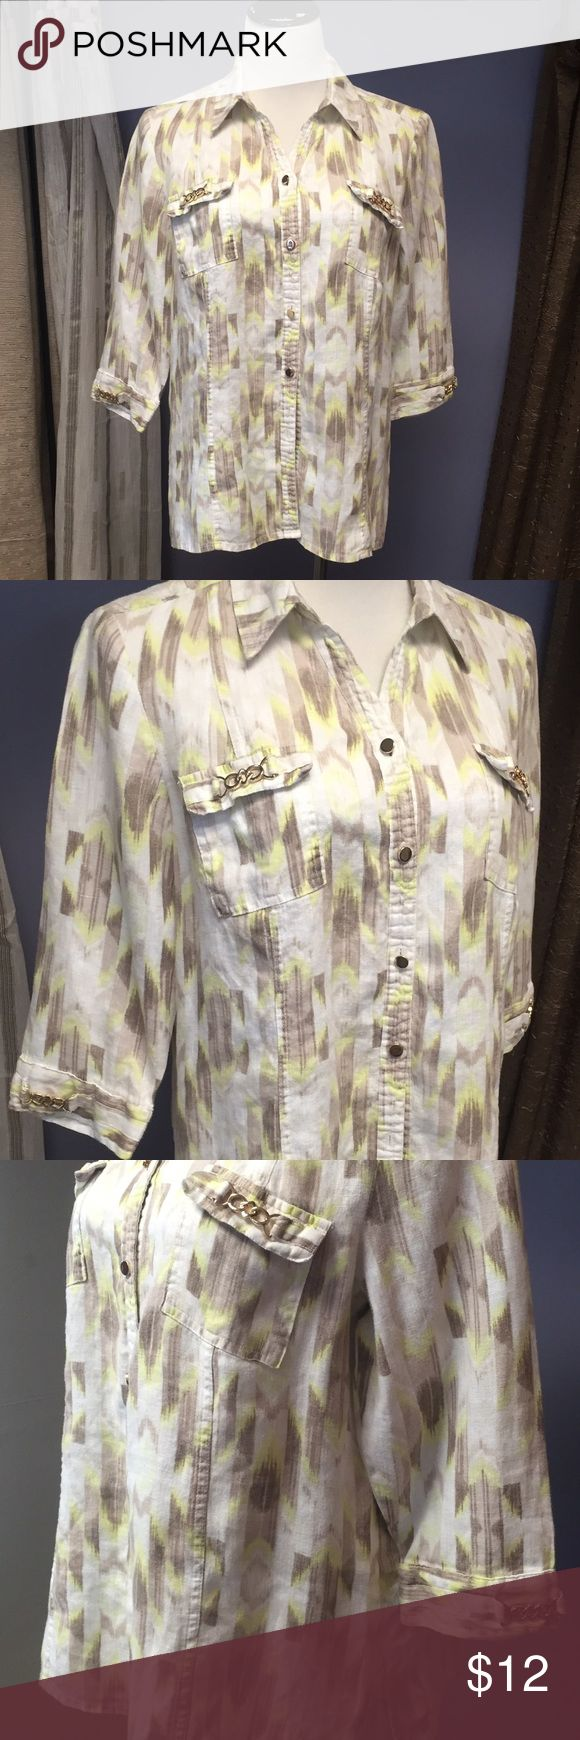 JM Collection Petite Shirt Cream & yellow top with gold accents and 3/4 length sleeves. This top can be a shirt or would make a cute thin jacket worn over a tank top JM Collection Petite Tops Button Down Shirts